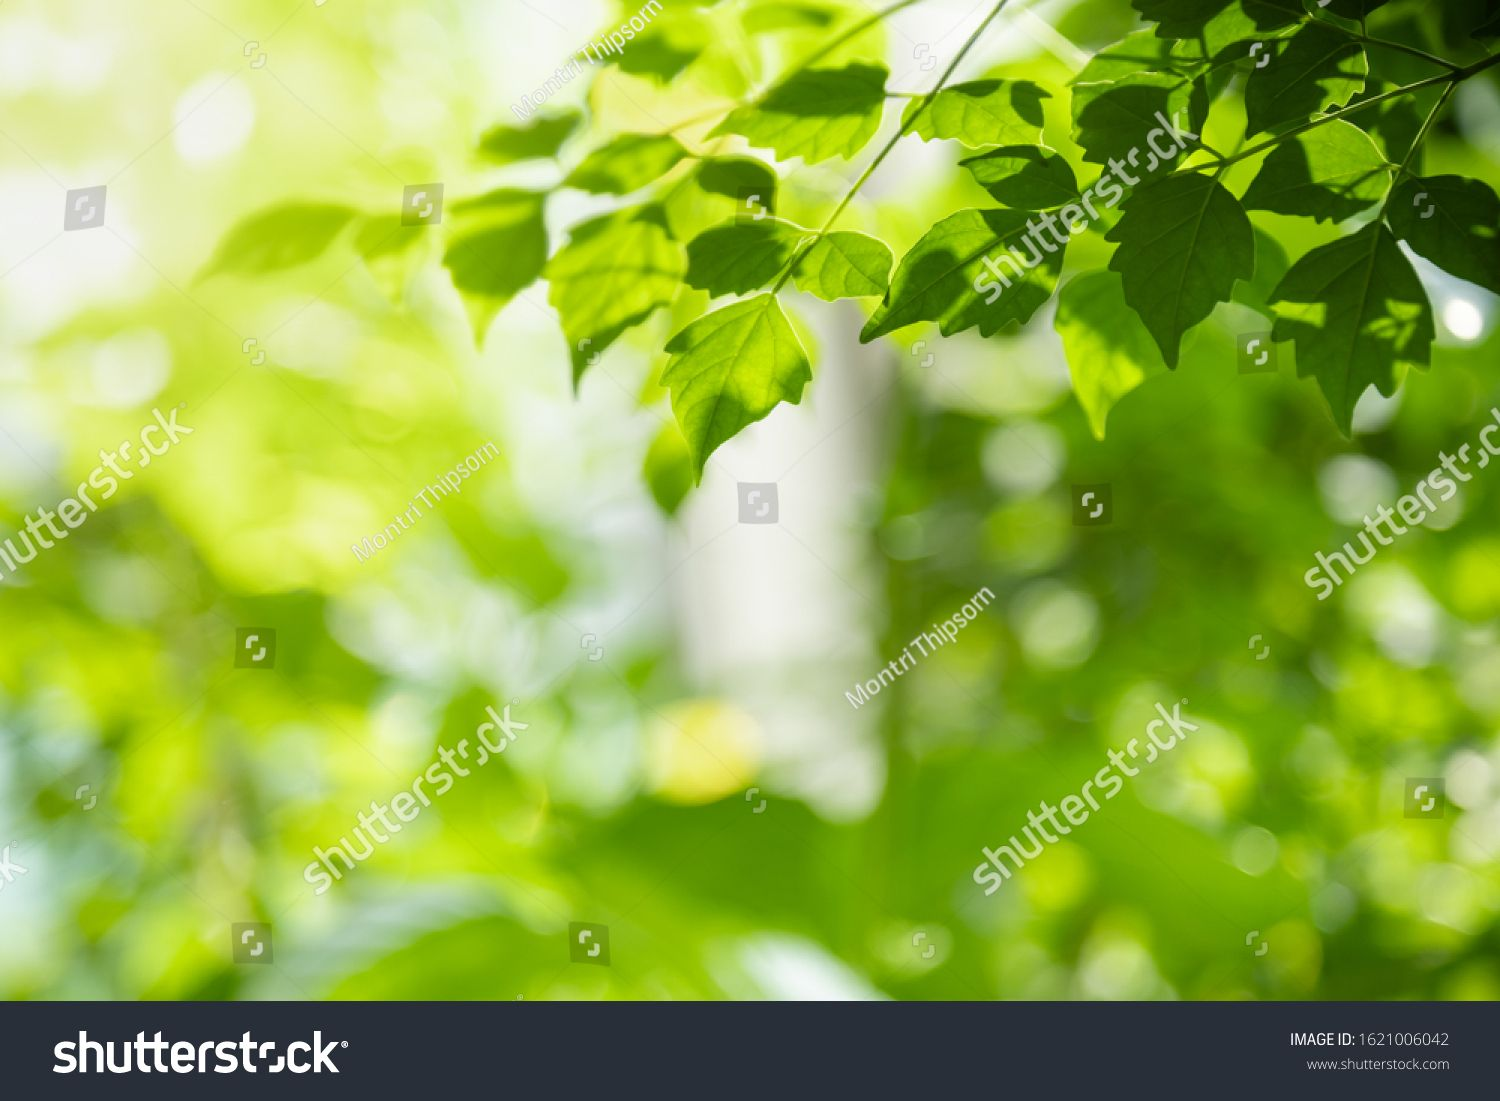 Close Up Of Nature View Green Leaf On Blurred Greenery Background Under Sunlight With Bokeh And Copy Space Using As B In 2020 Greenery Background Nature View Landscape